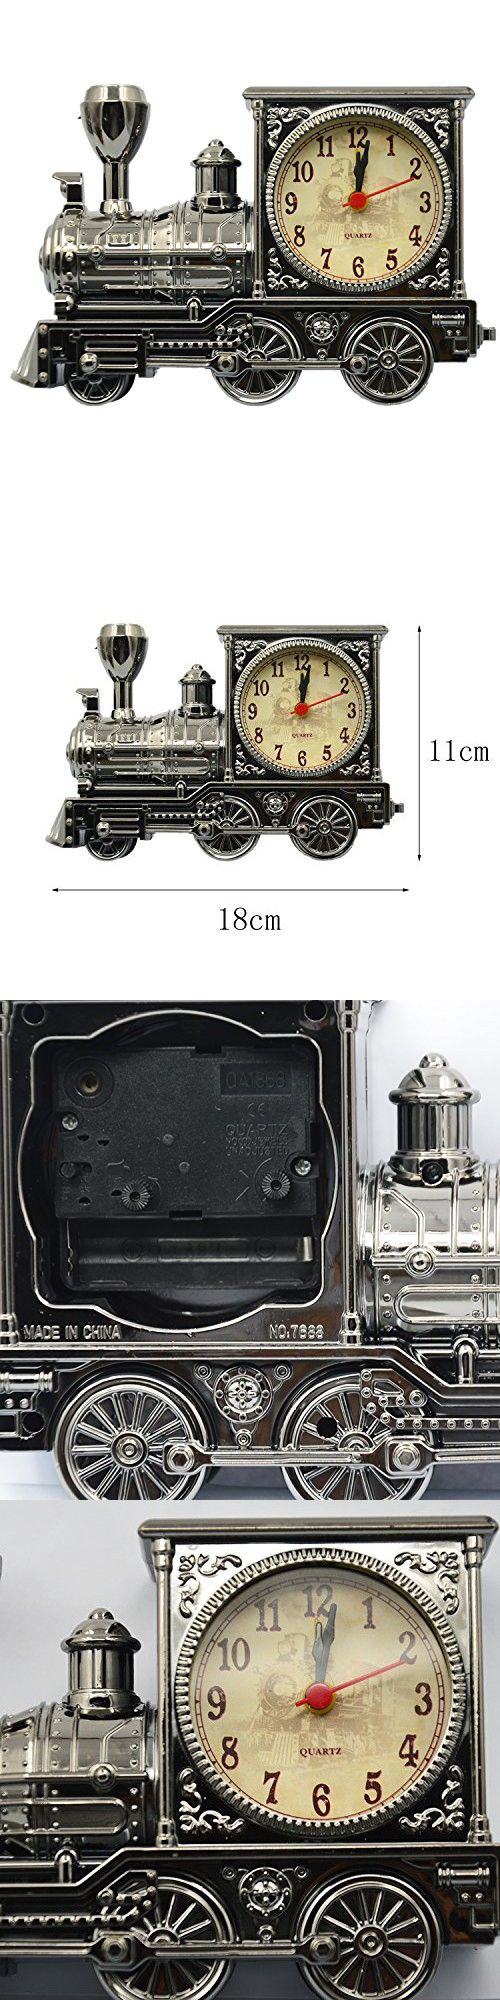 Vintage Retro Train Style Students Alarm Clock Table Desk Time Clock Cool Train Model Home Office Shelf Decoration Novelty Birthday Holiday Children Adults Boys Gift Brown